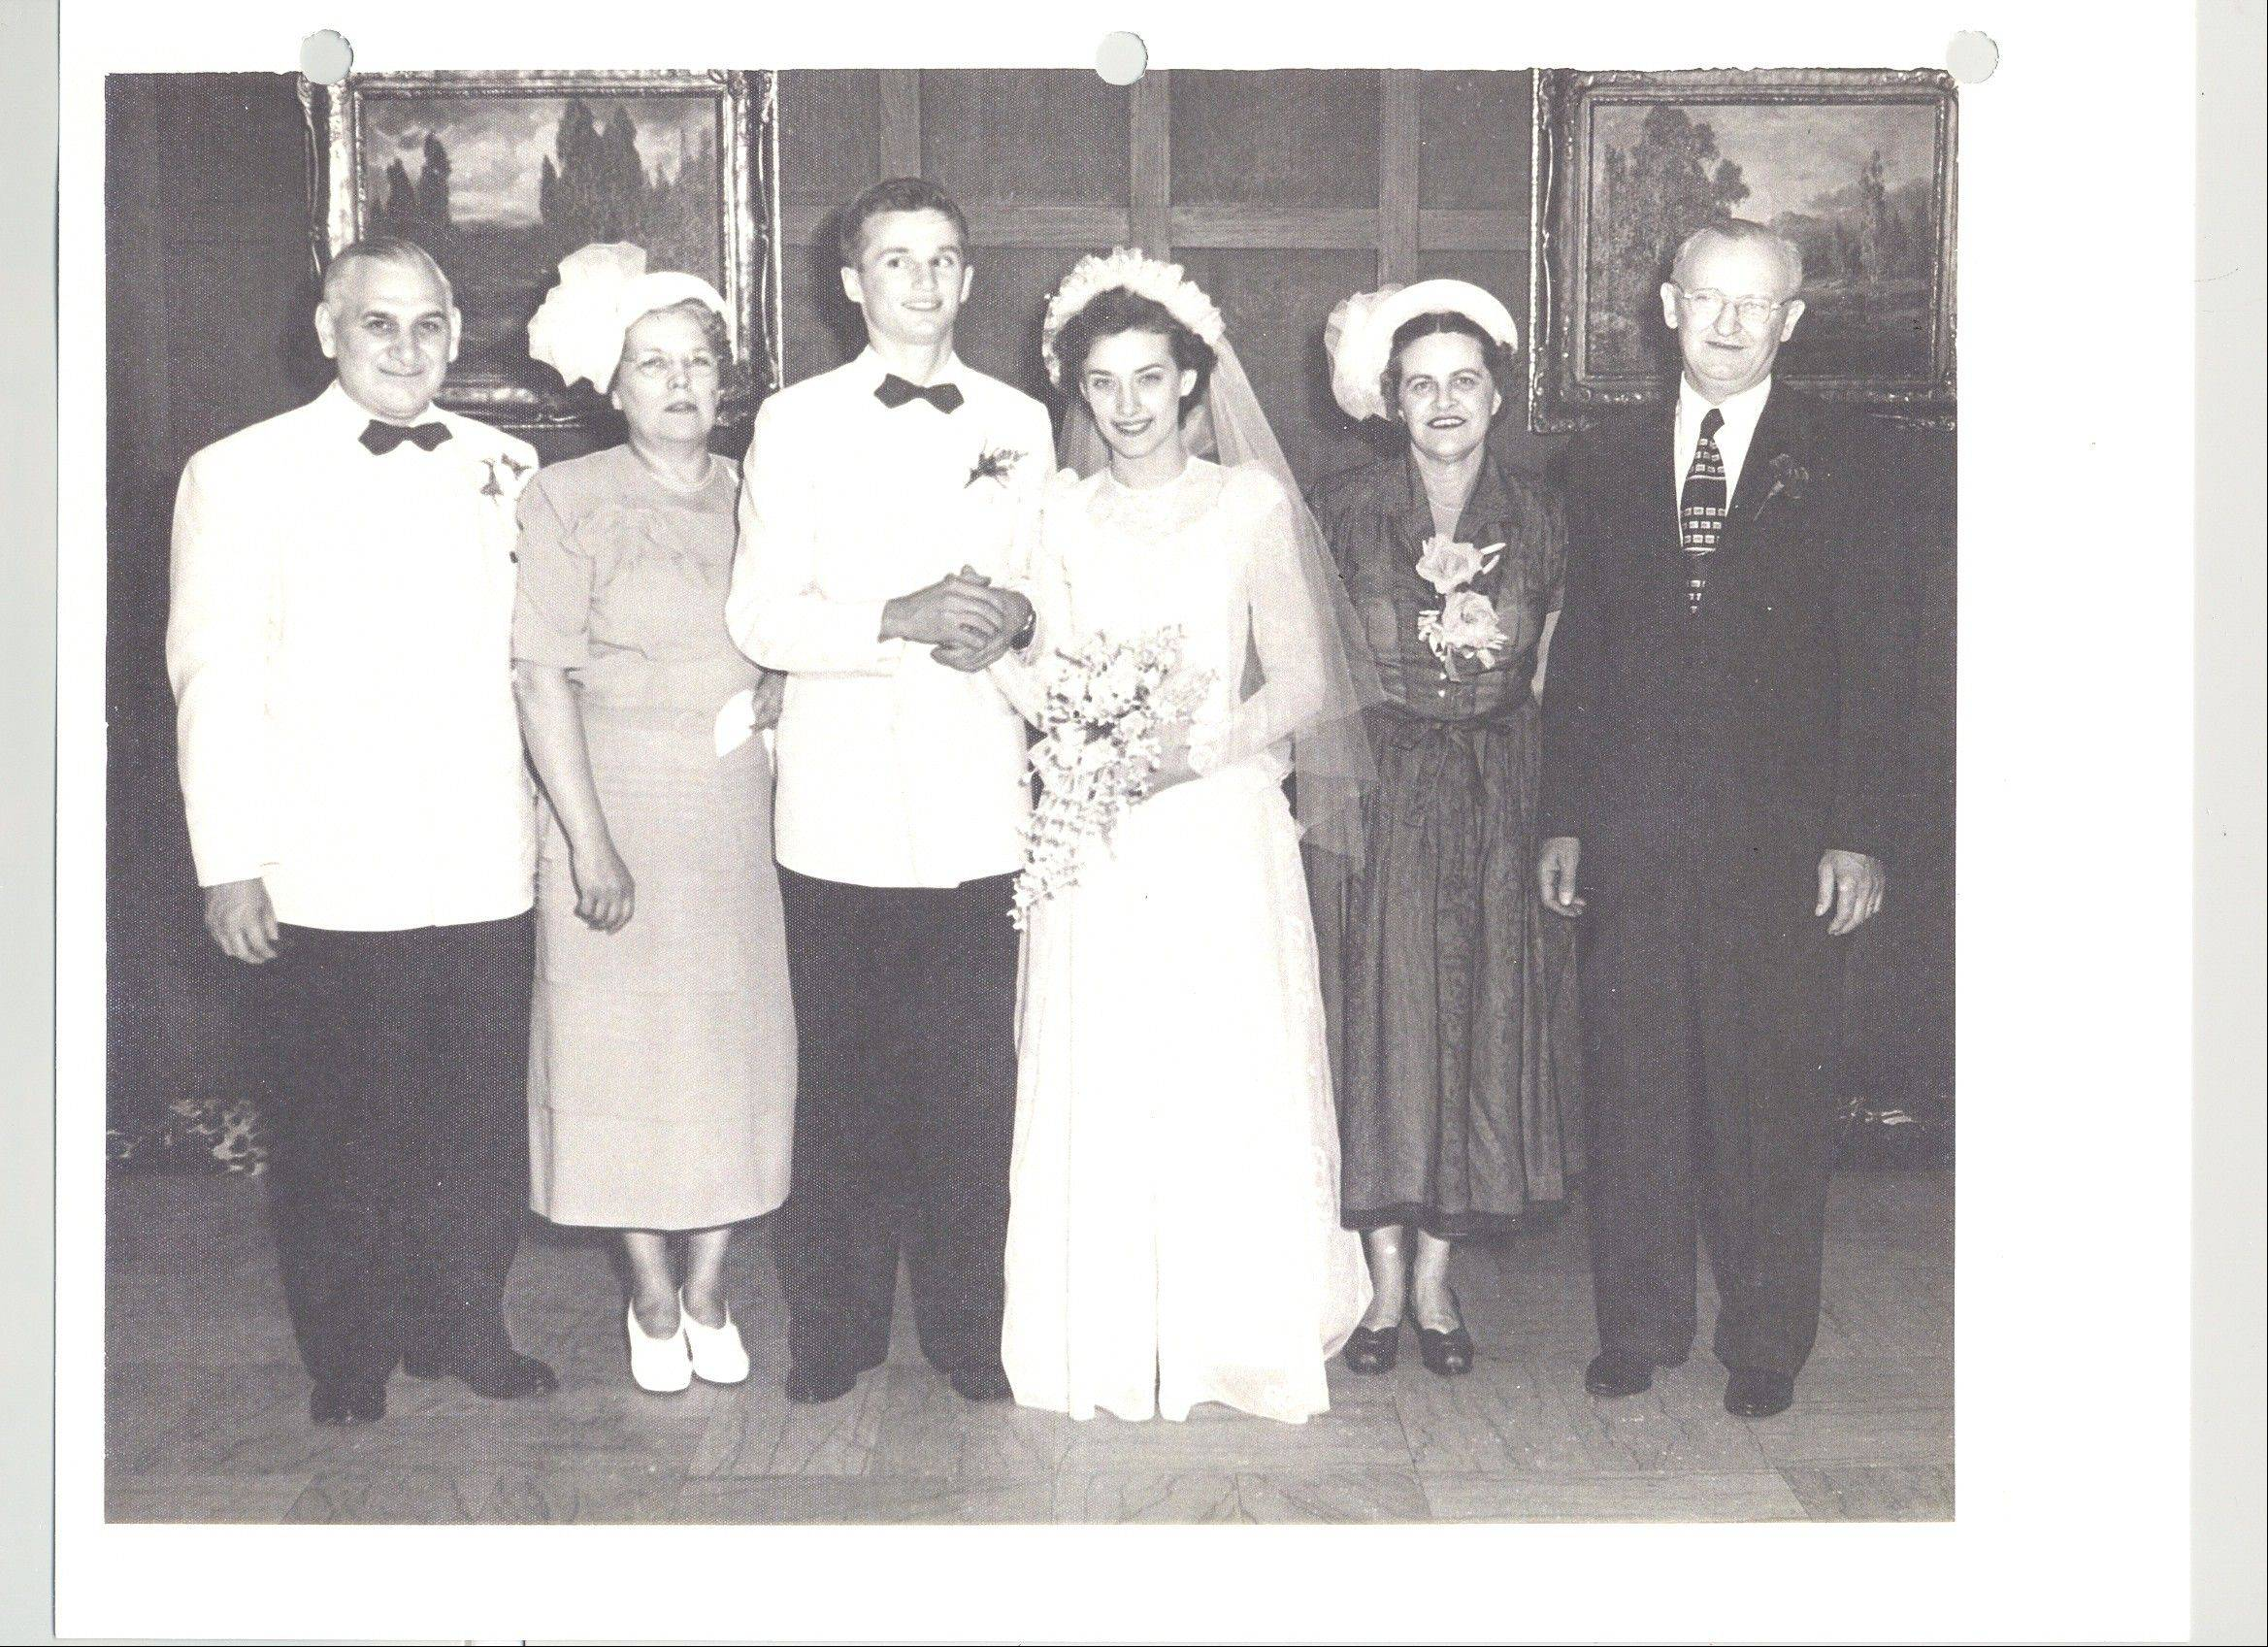 From left on George and Mildred's wedding day in 1949: August Paluch; Anna Paluch; George and Mildred Halas; Ann Halas and Walter Halas.